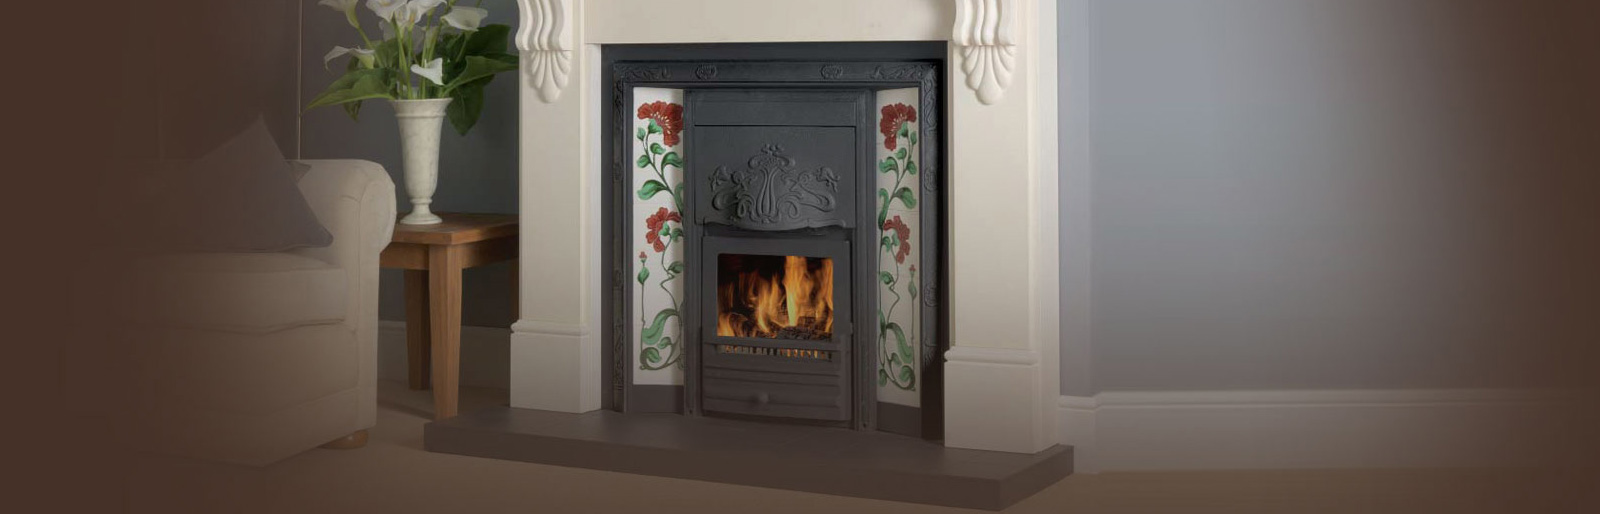 Solid Fuel Glass Fronted Fireplaces Merton Wimbledon Wandsworth Kingston Upon Thames London